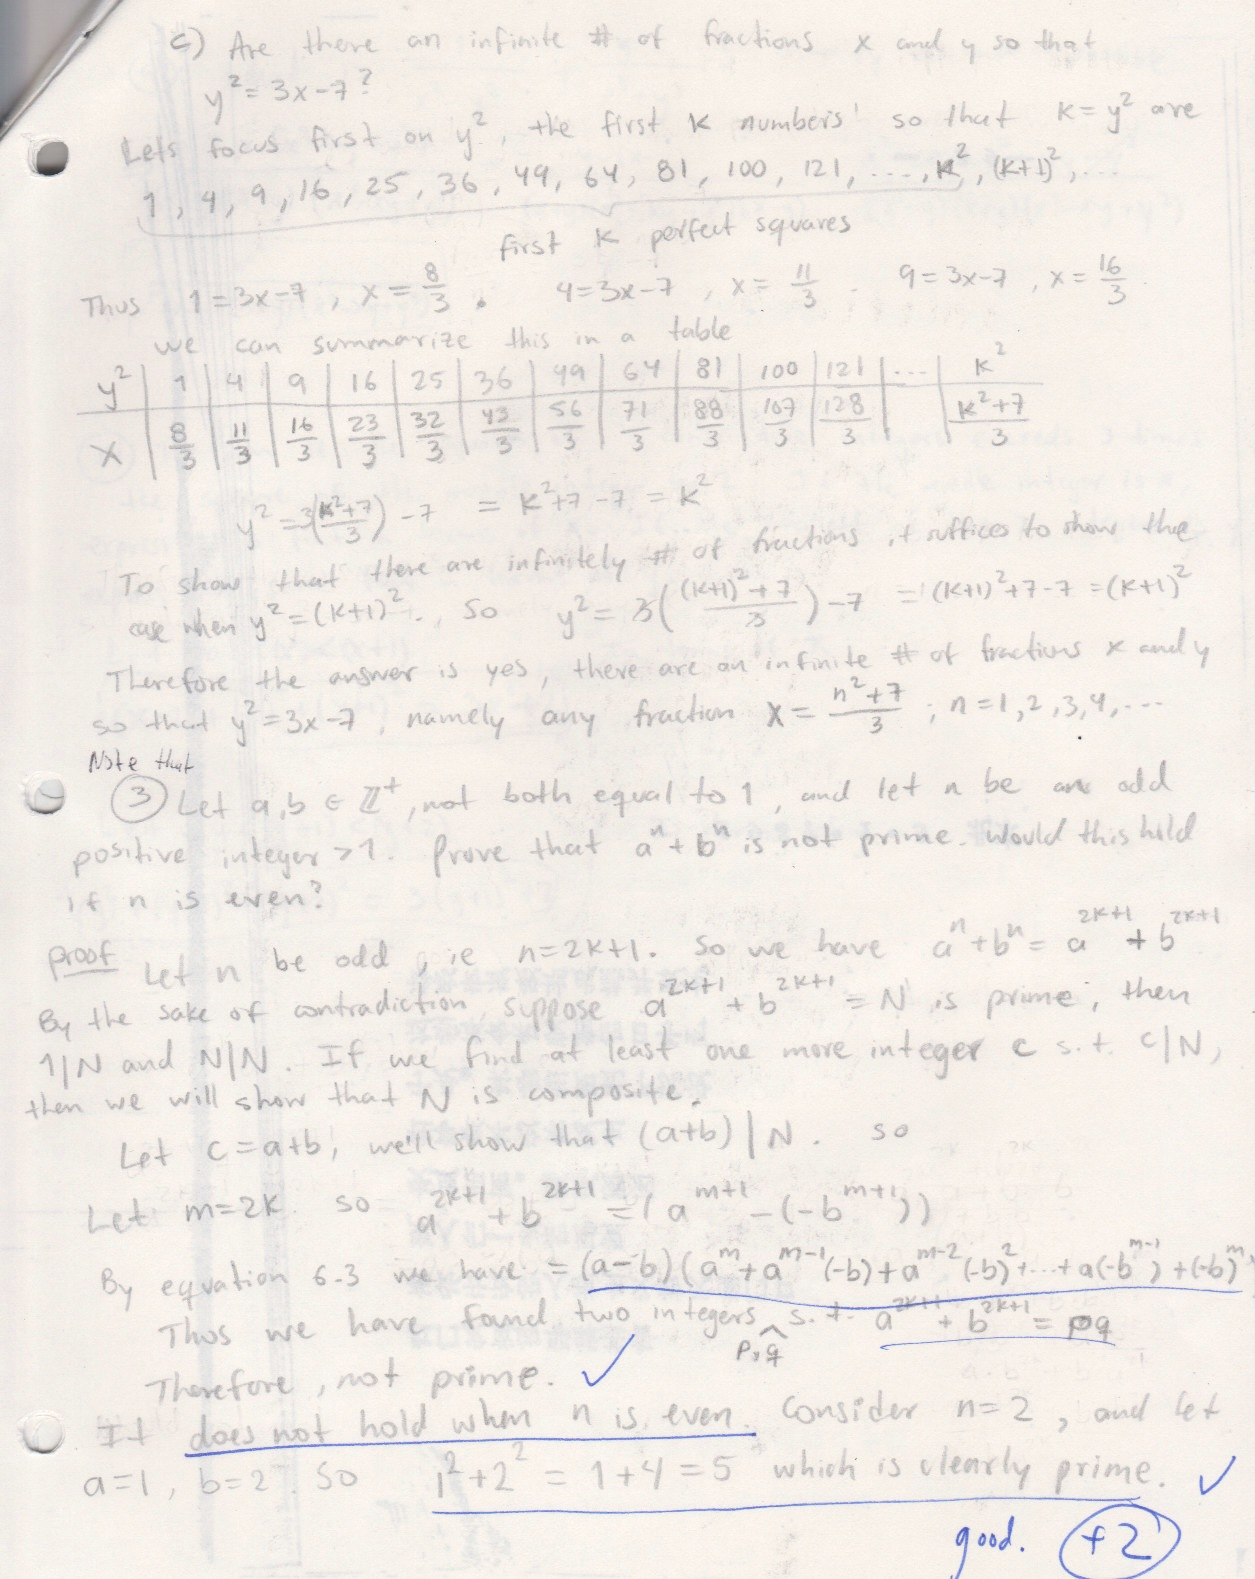 My old math homework from UC Berkeley : Math 151 hw11